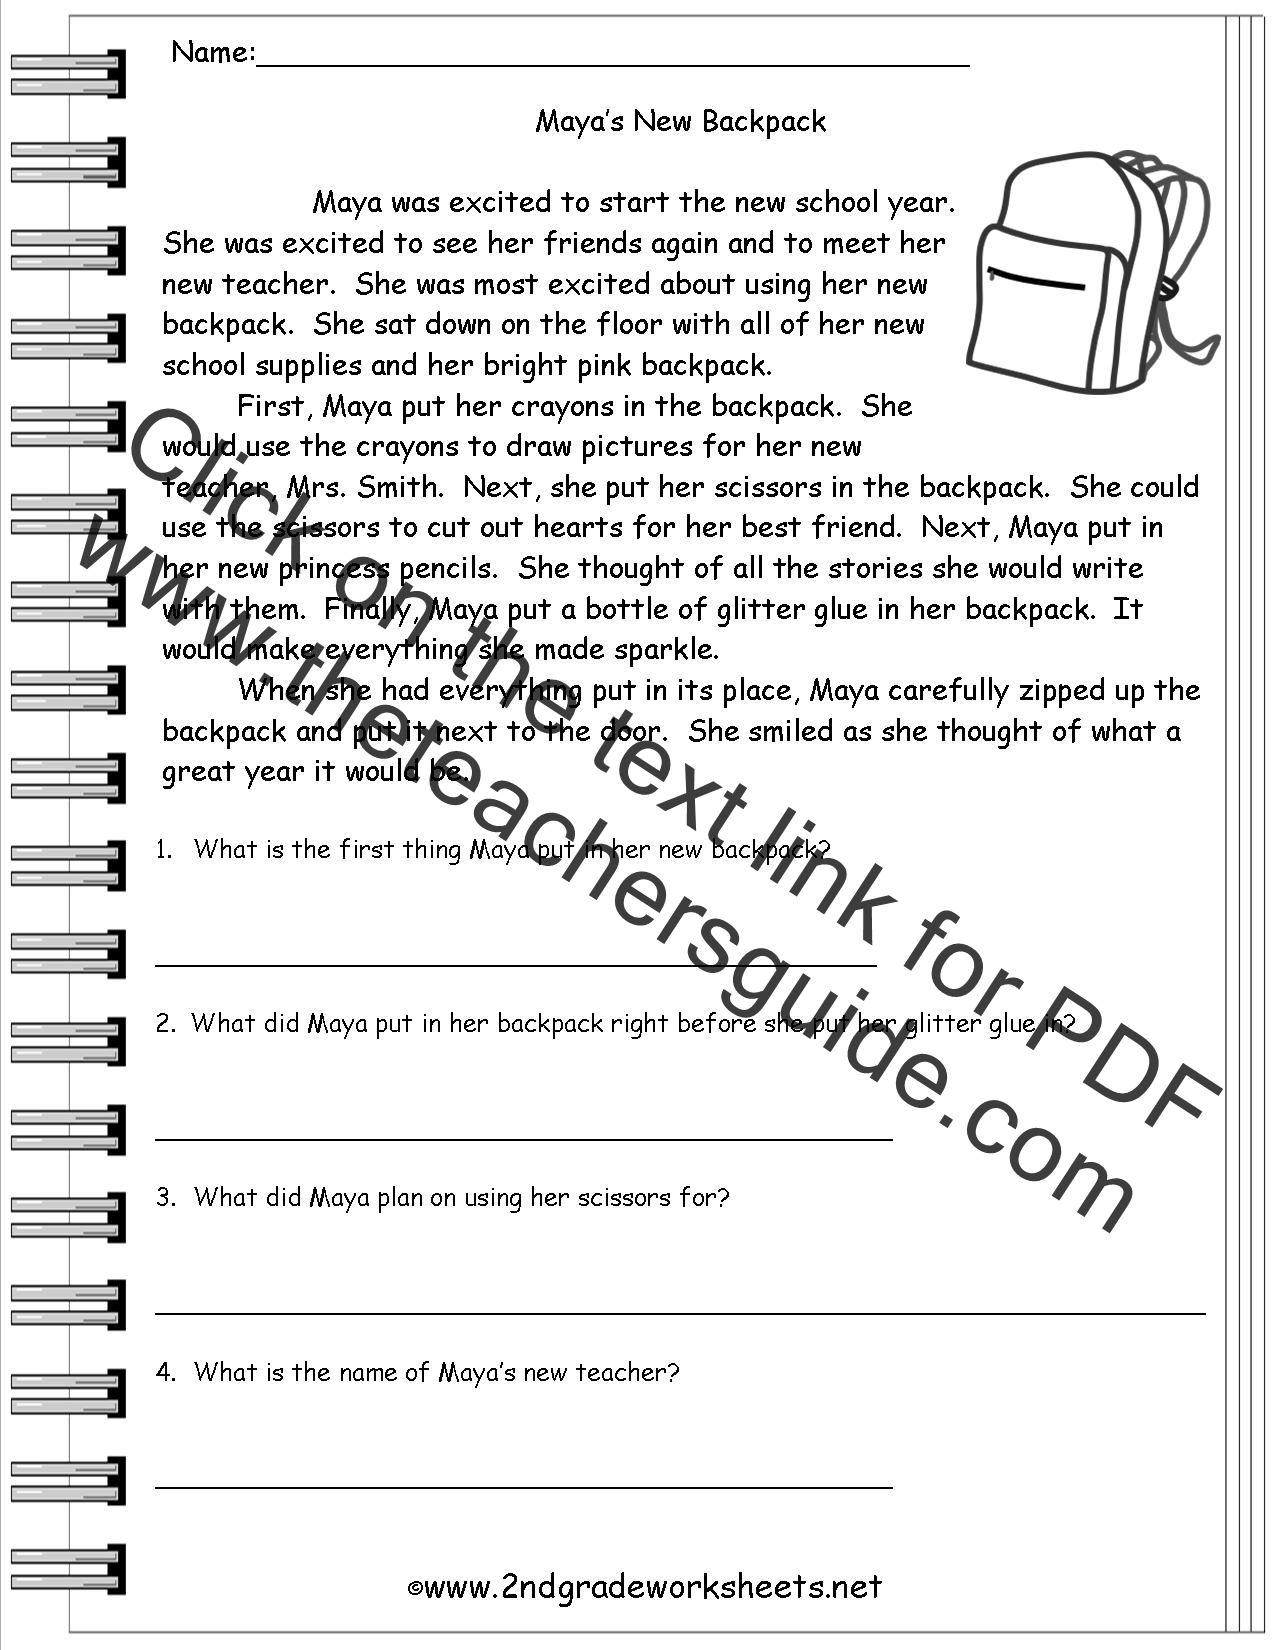 Worksheet Grade 2 Reading Comprehension reading worksheeets literature worksheets